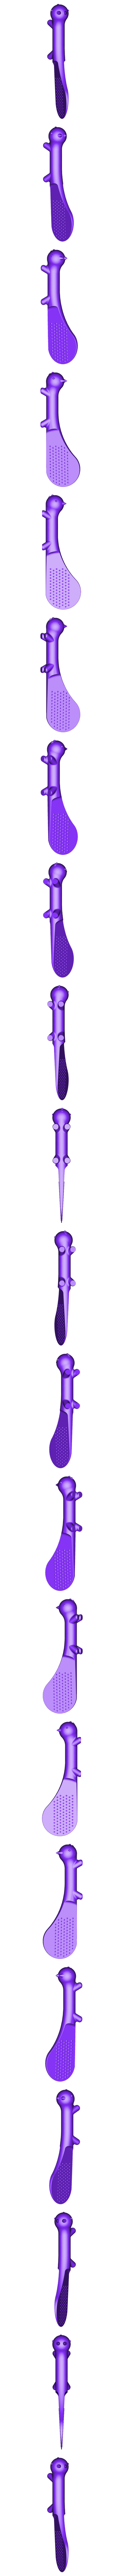 ICE_AGE_SERVING_SPOON.stl Download free STL file (ICE AGE) Squirrel Serving Spoon • Object to 3D print, MuSSy